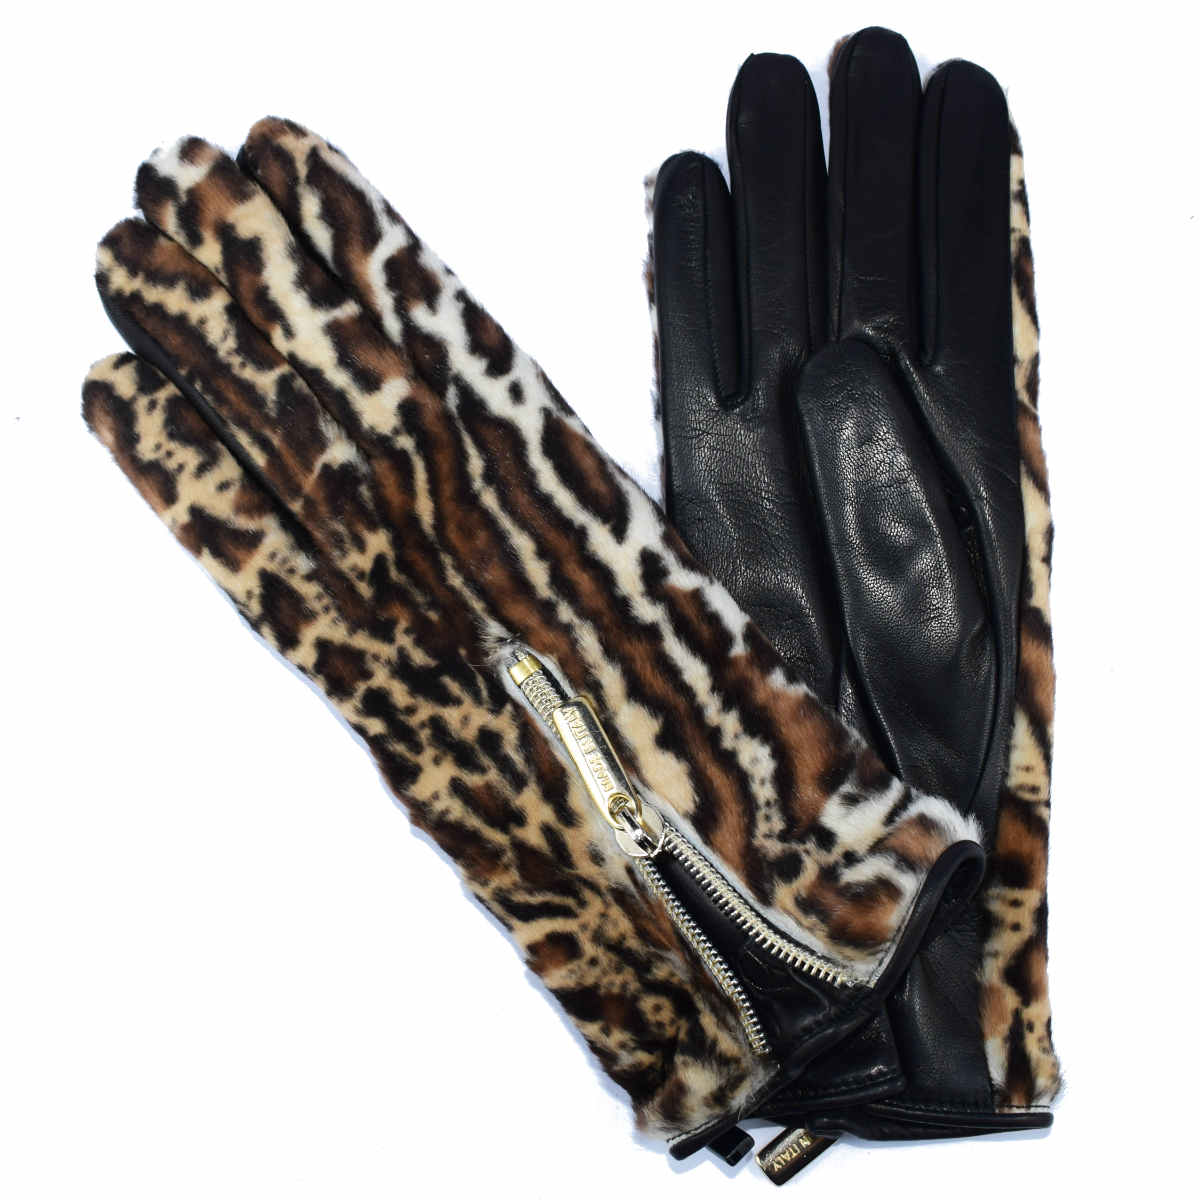 5H10 GLOVE WITH ECOLOGICAL FUR AND LEATHER by Bottega Fiorentina